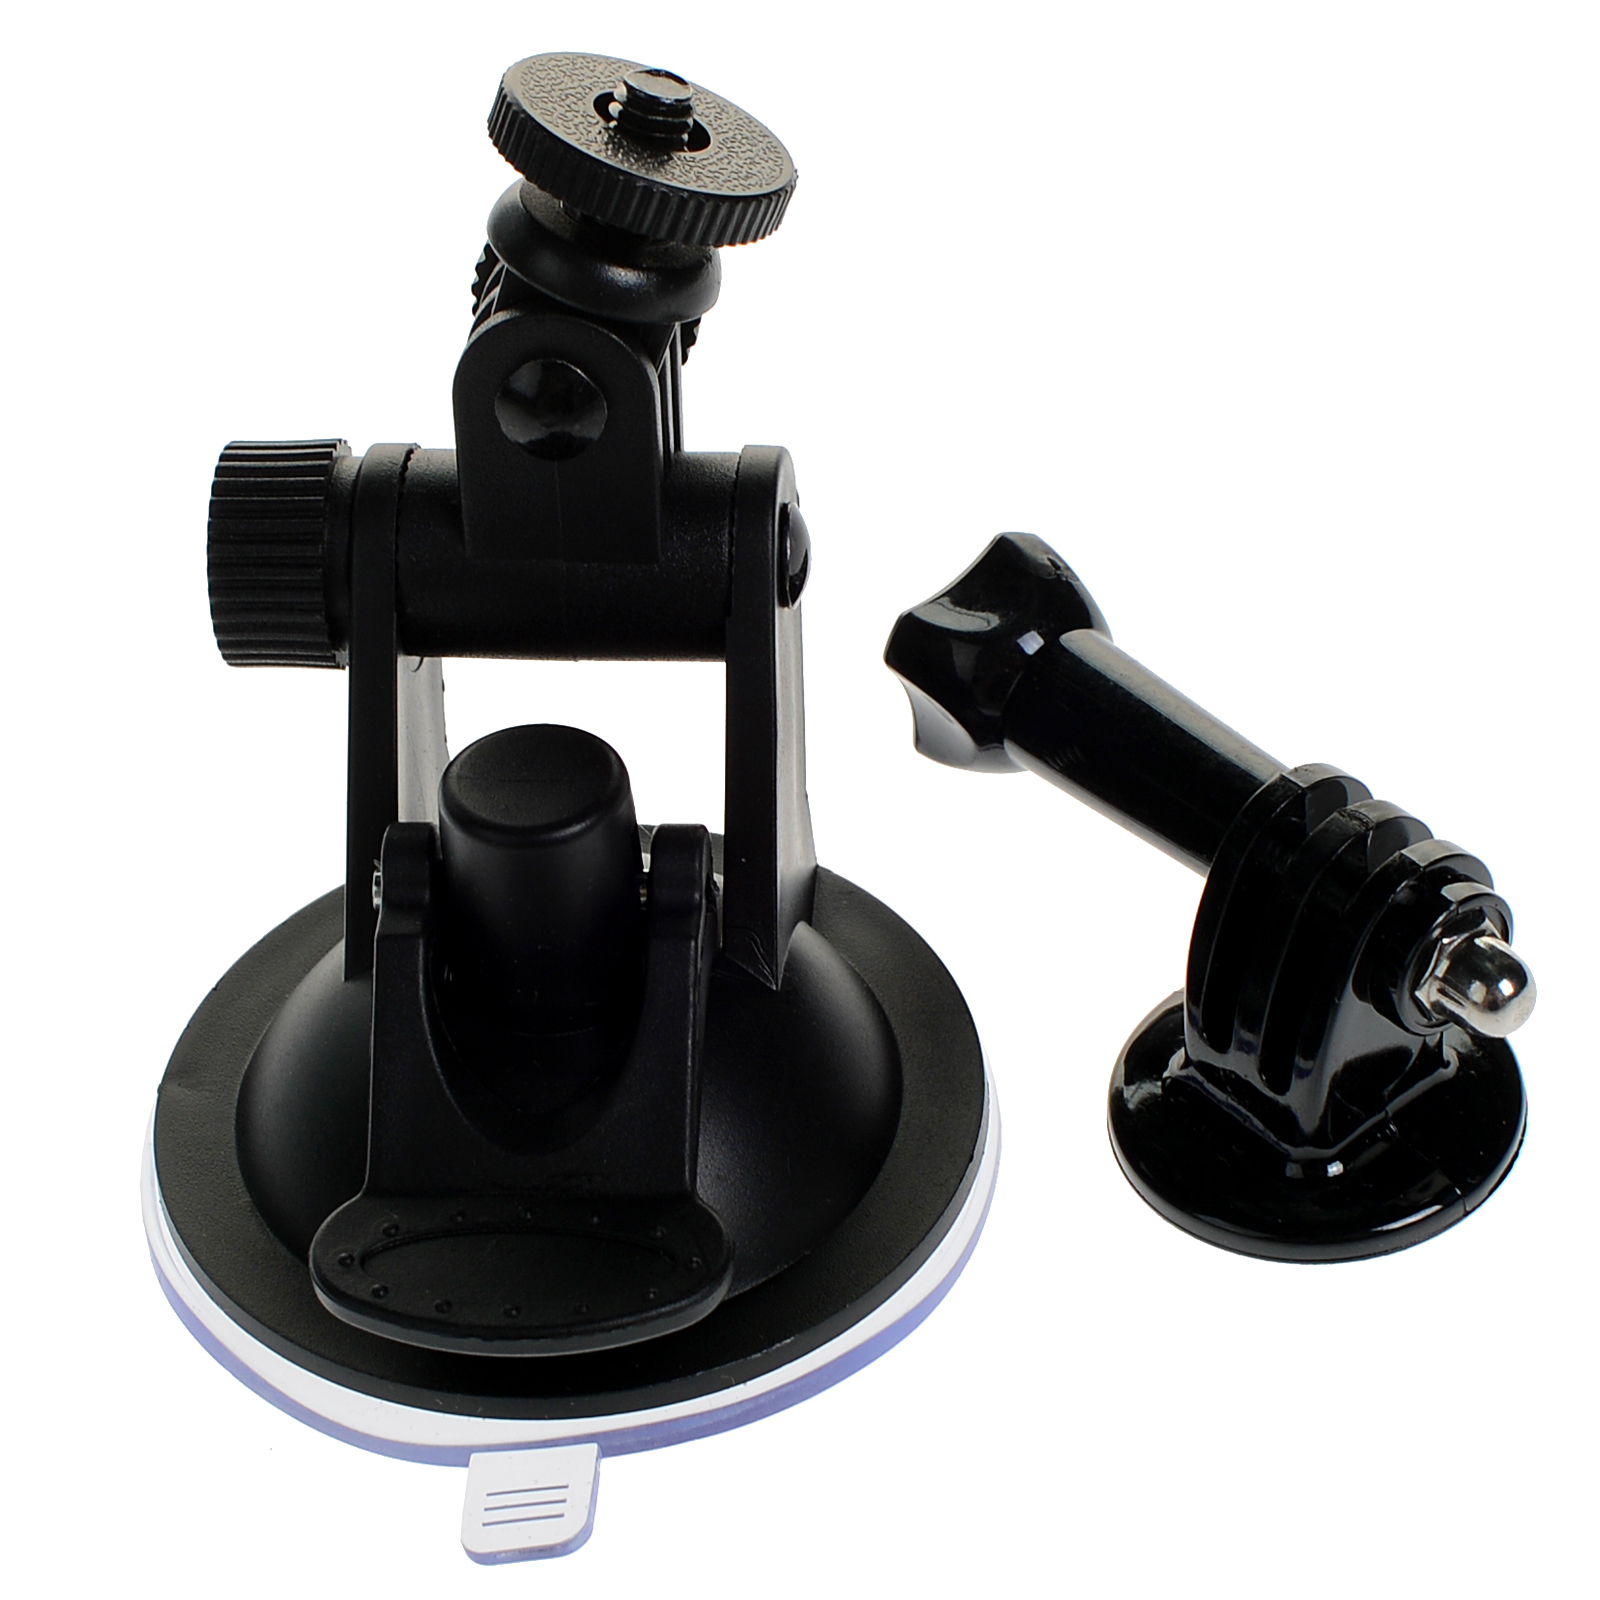 Window Suction Cups Car Window Windshield Glass Suction Cup Mount For Gopro